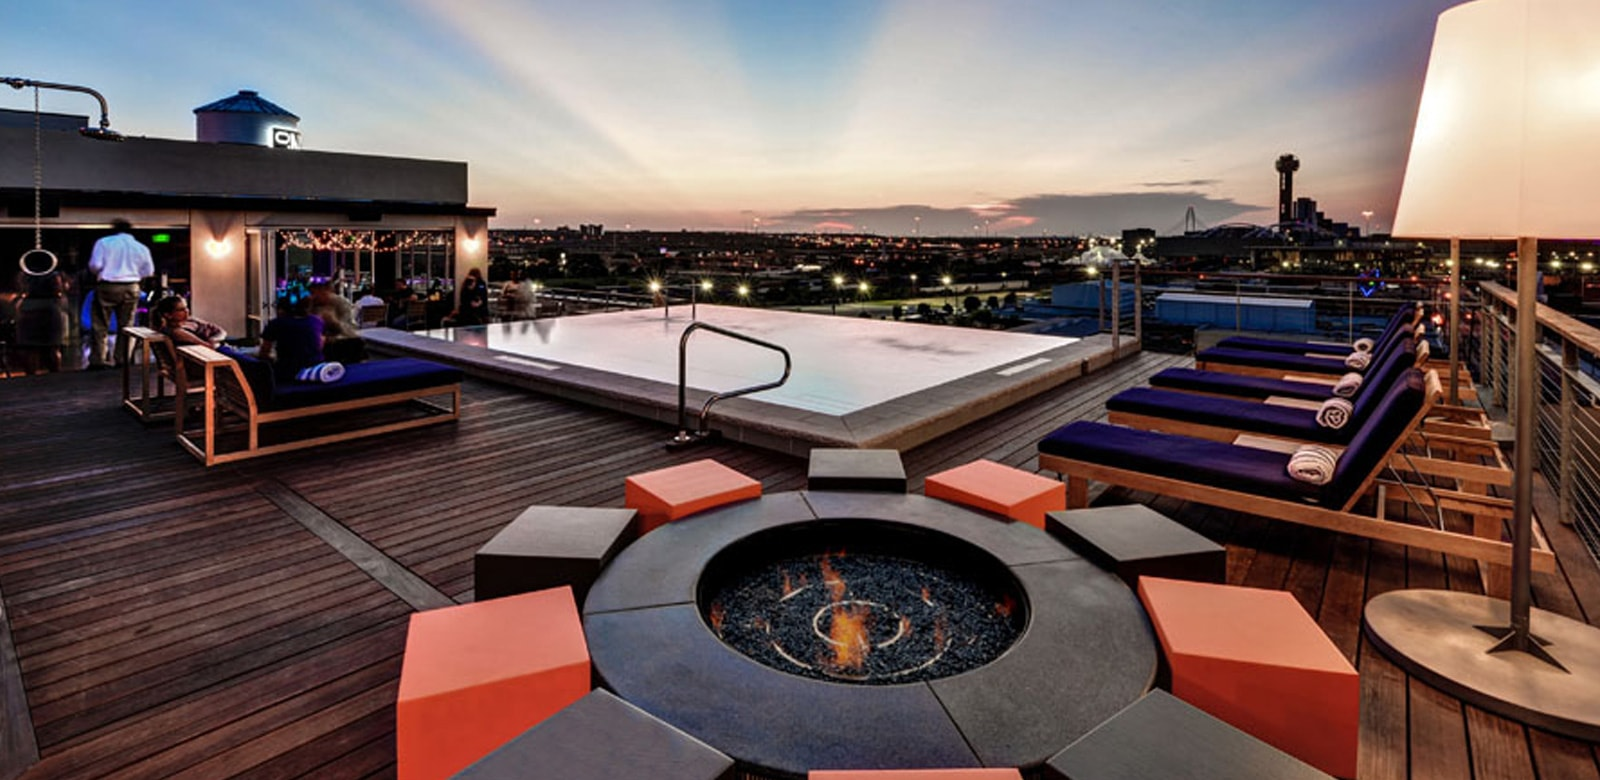 Fire pit by infinity pool at CANVAS Hotel in Dallas